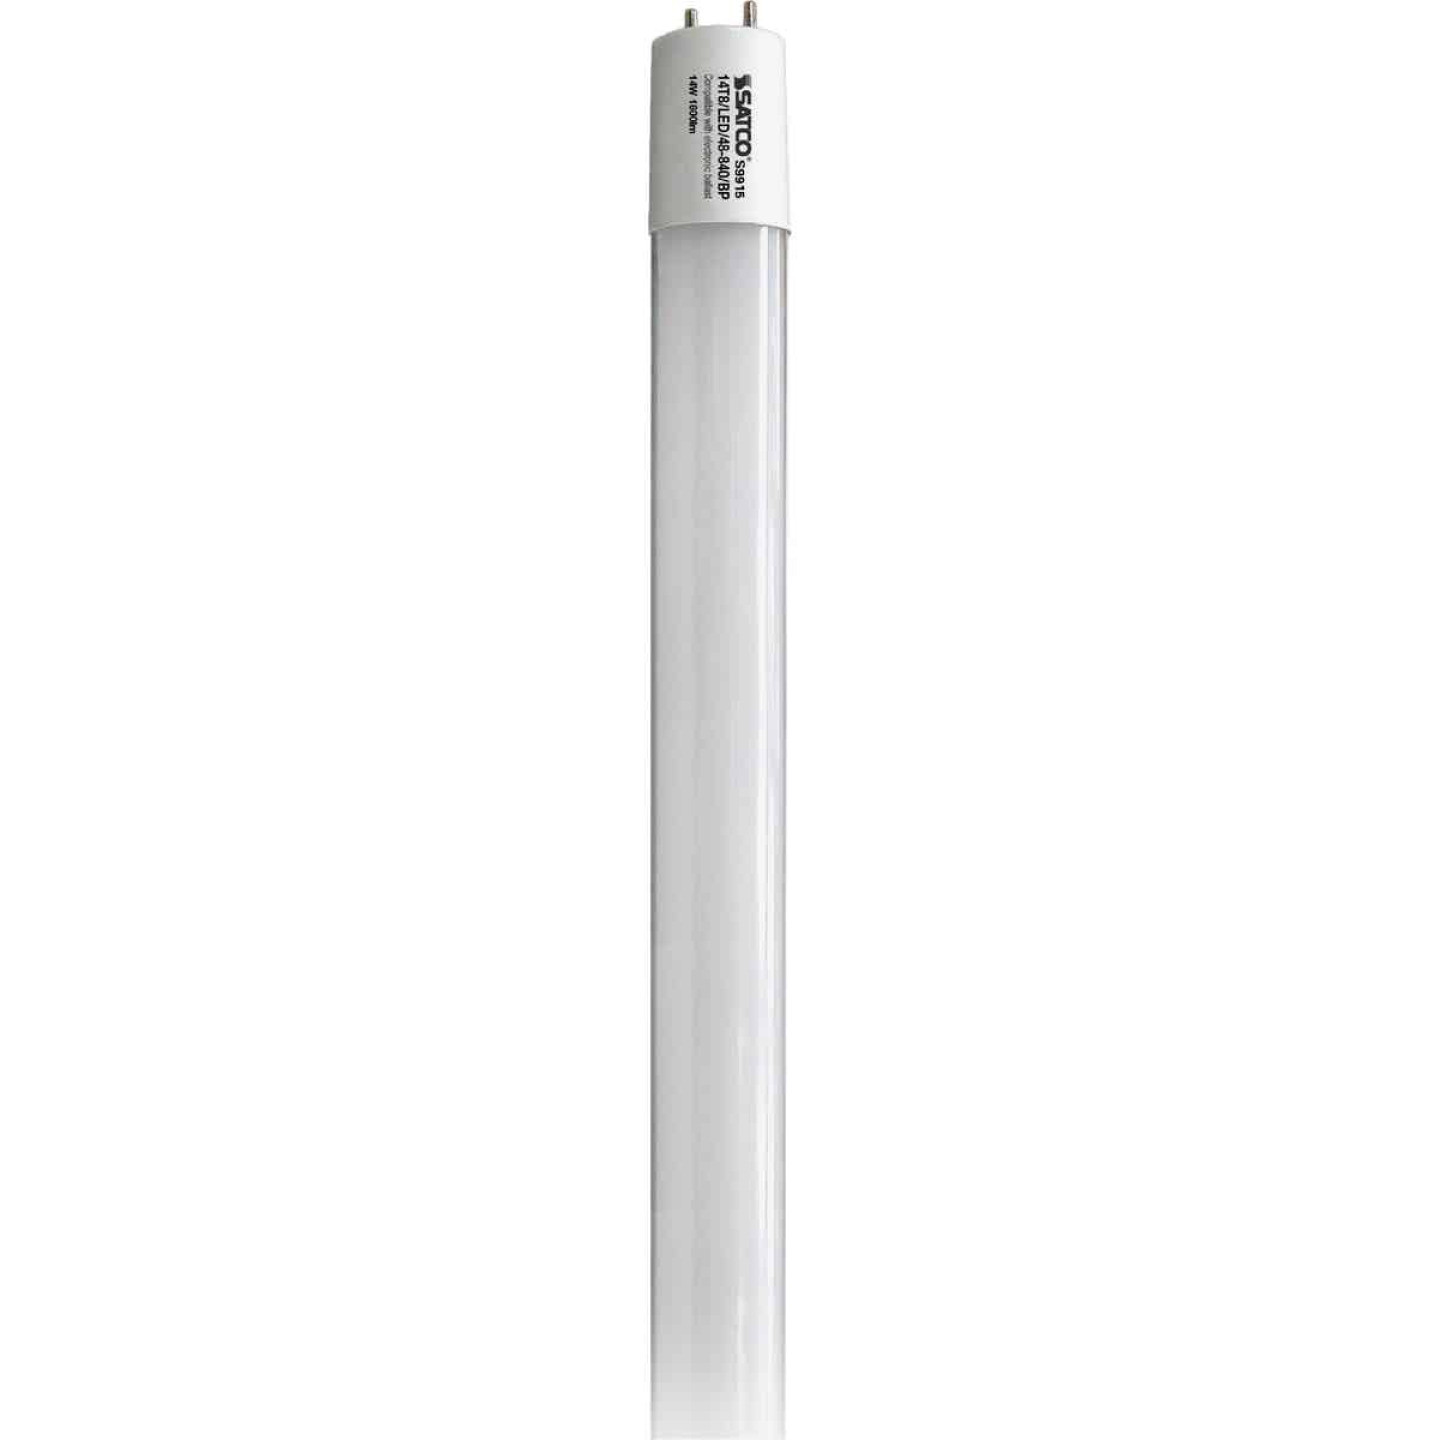 Satco 32W Equivalent 48 In. Cool White T8 Medium Bi-Pin Ballast Bypass DLC Certified LED Tube Light Bulb Image 1